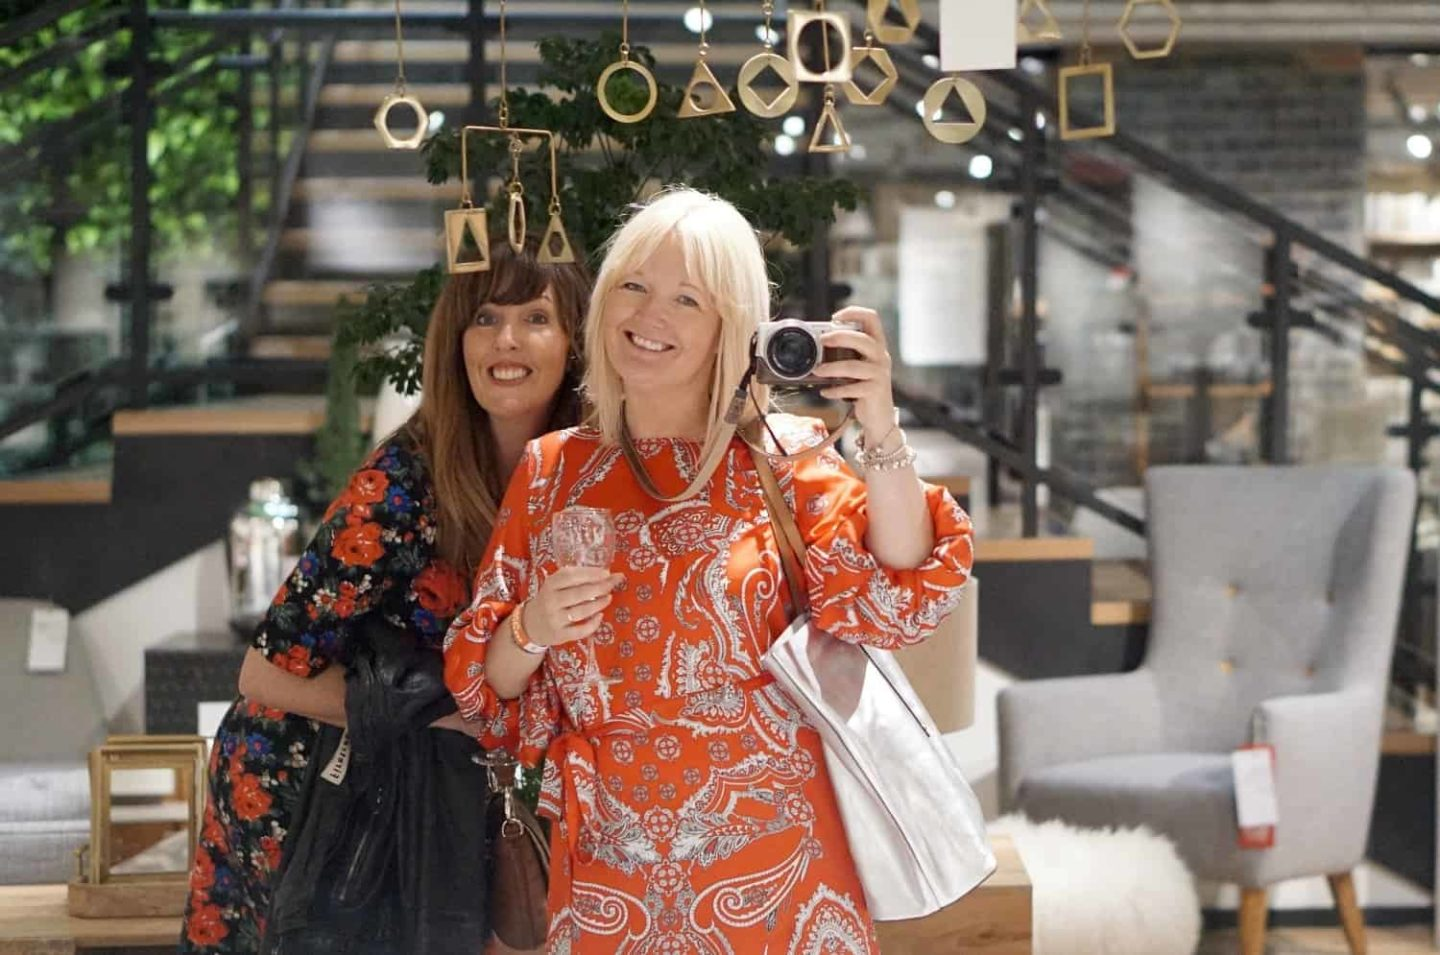 The Blogtacular West Elm Party, And River Island Summer Dresses